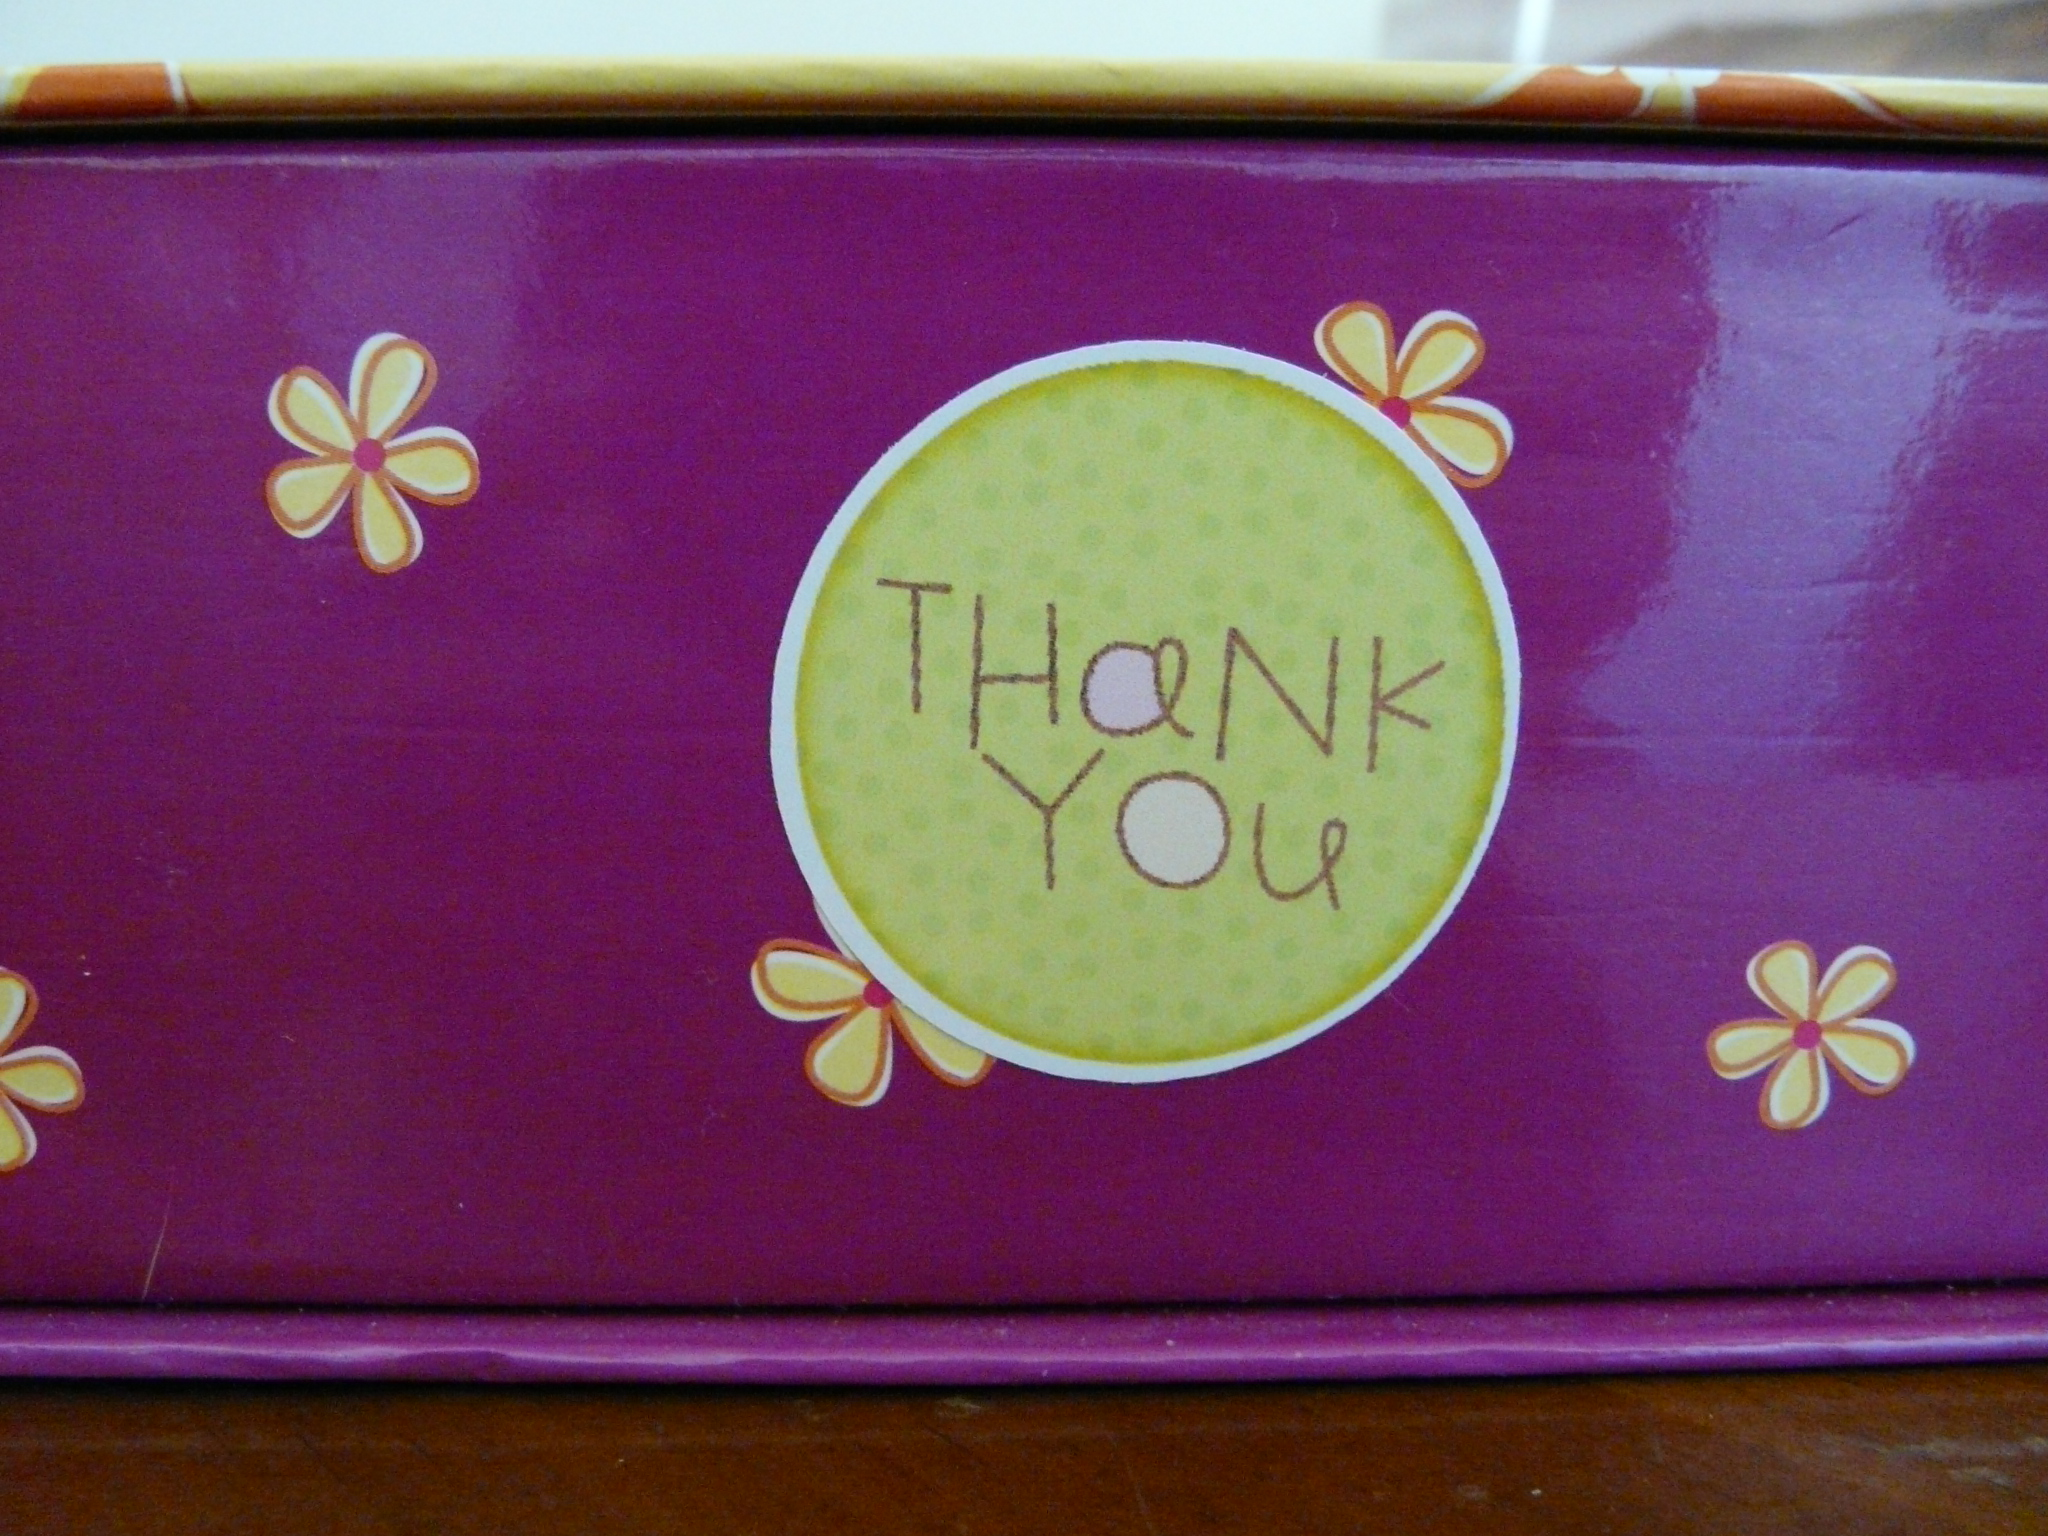 Thank You Note www.loveandtreasure.com